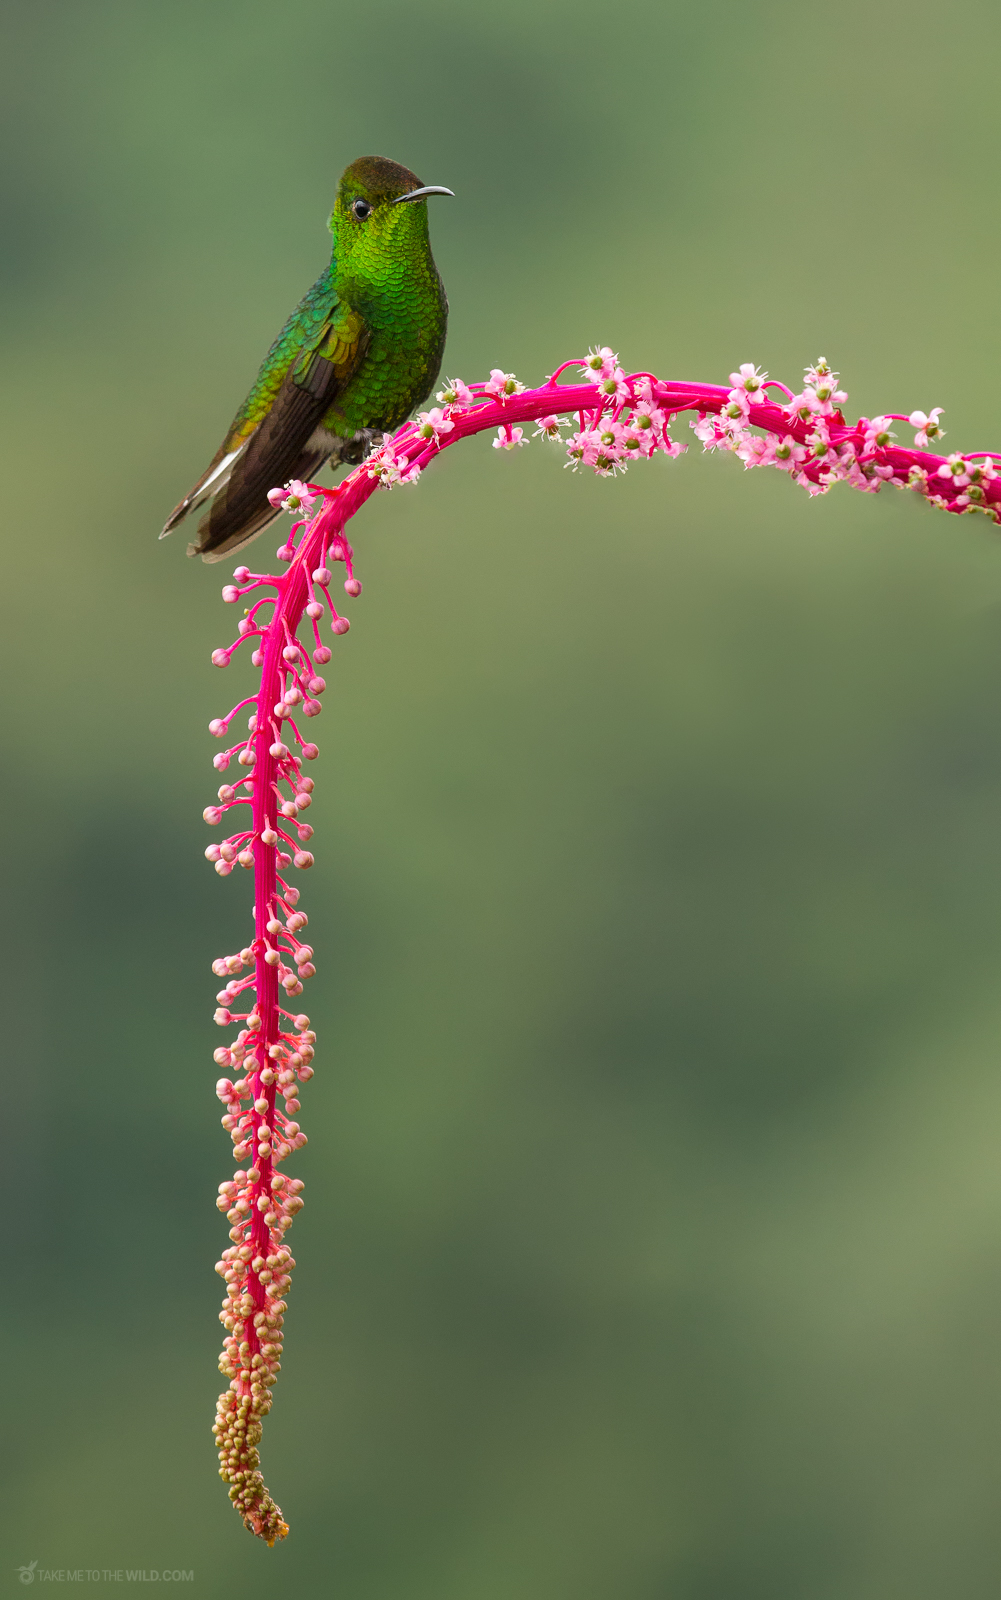 Coppery-headed Emerald, endemic from Costa Rica. Perched on flowers at Cinchona, Costa Rica.